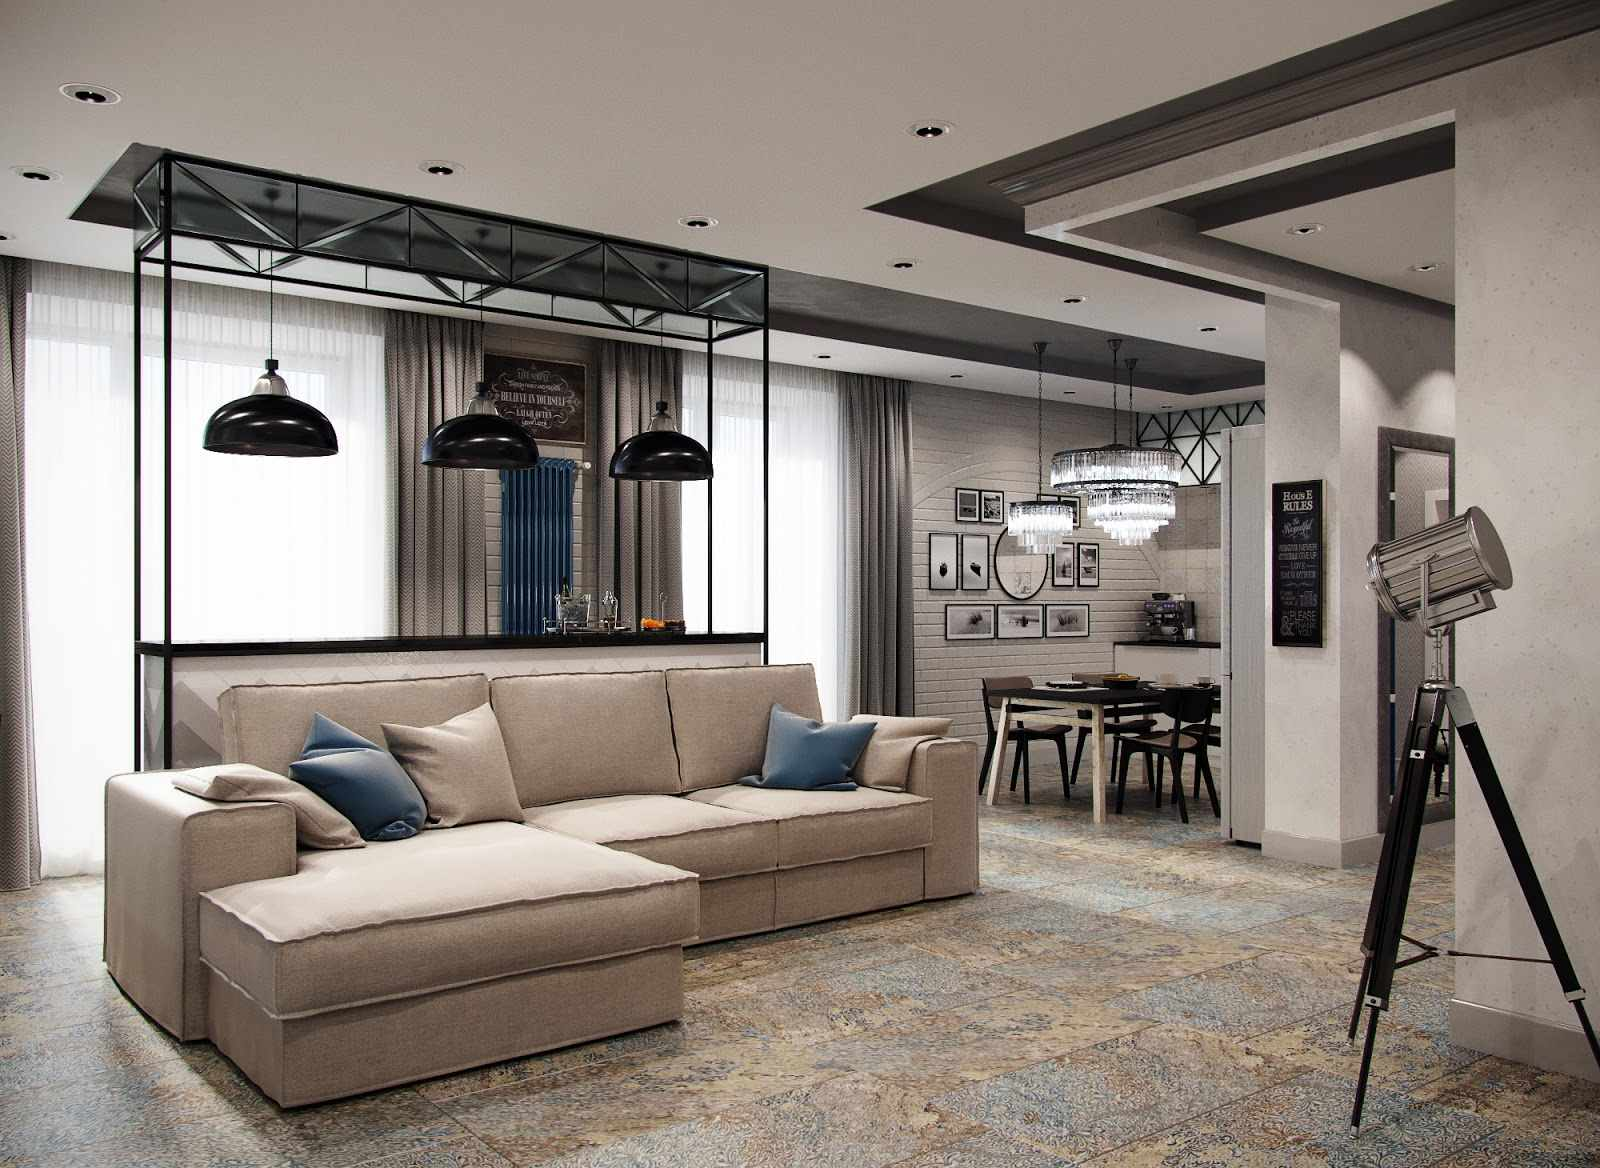 Dark wooden designed ceiling with artificial lighting zoning